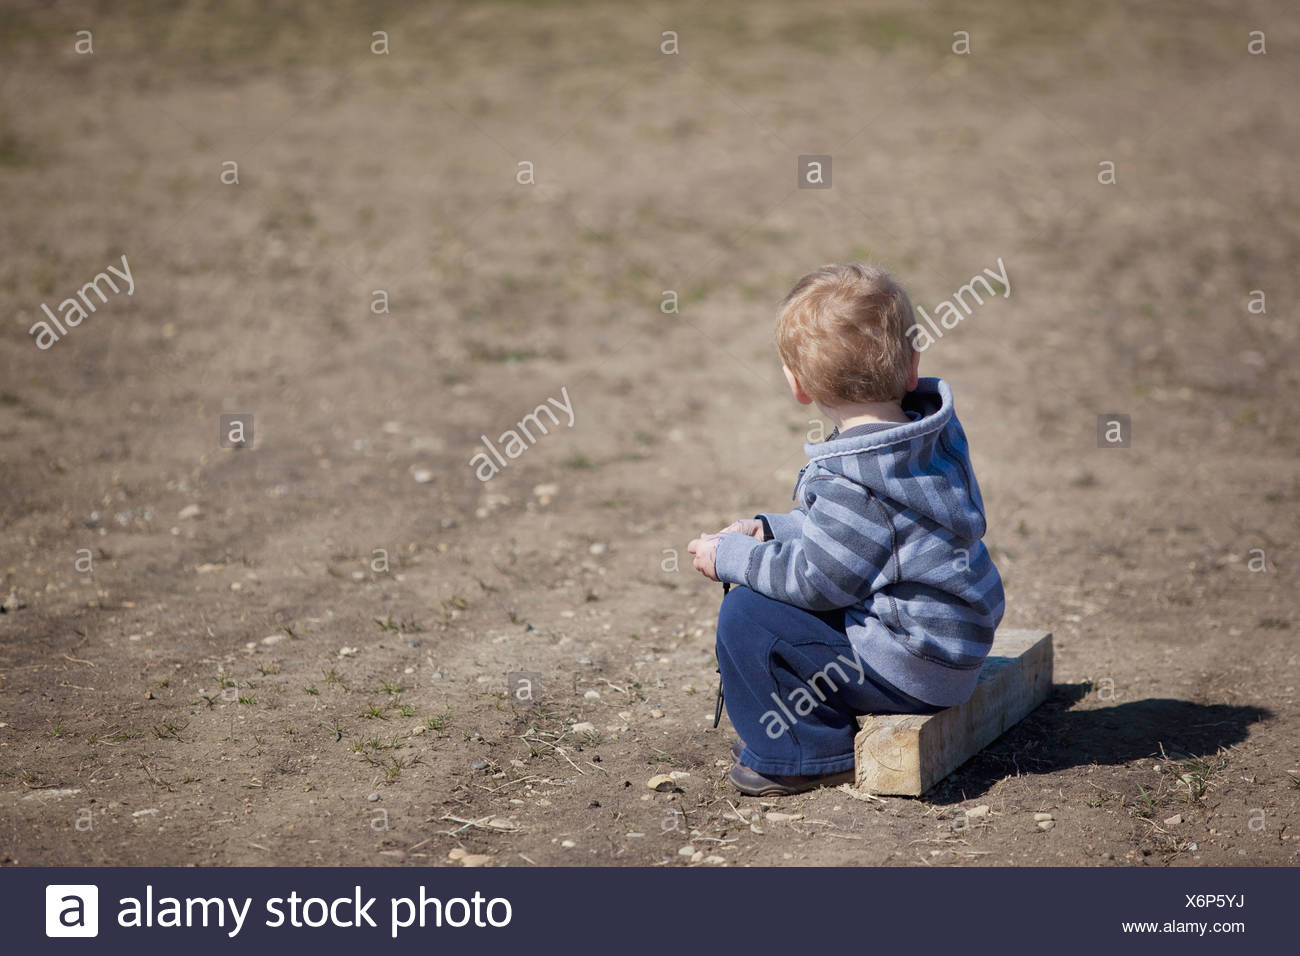 Young Boy Sitting On A Piece Of Wood - Stock Image